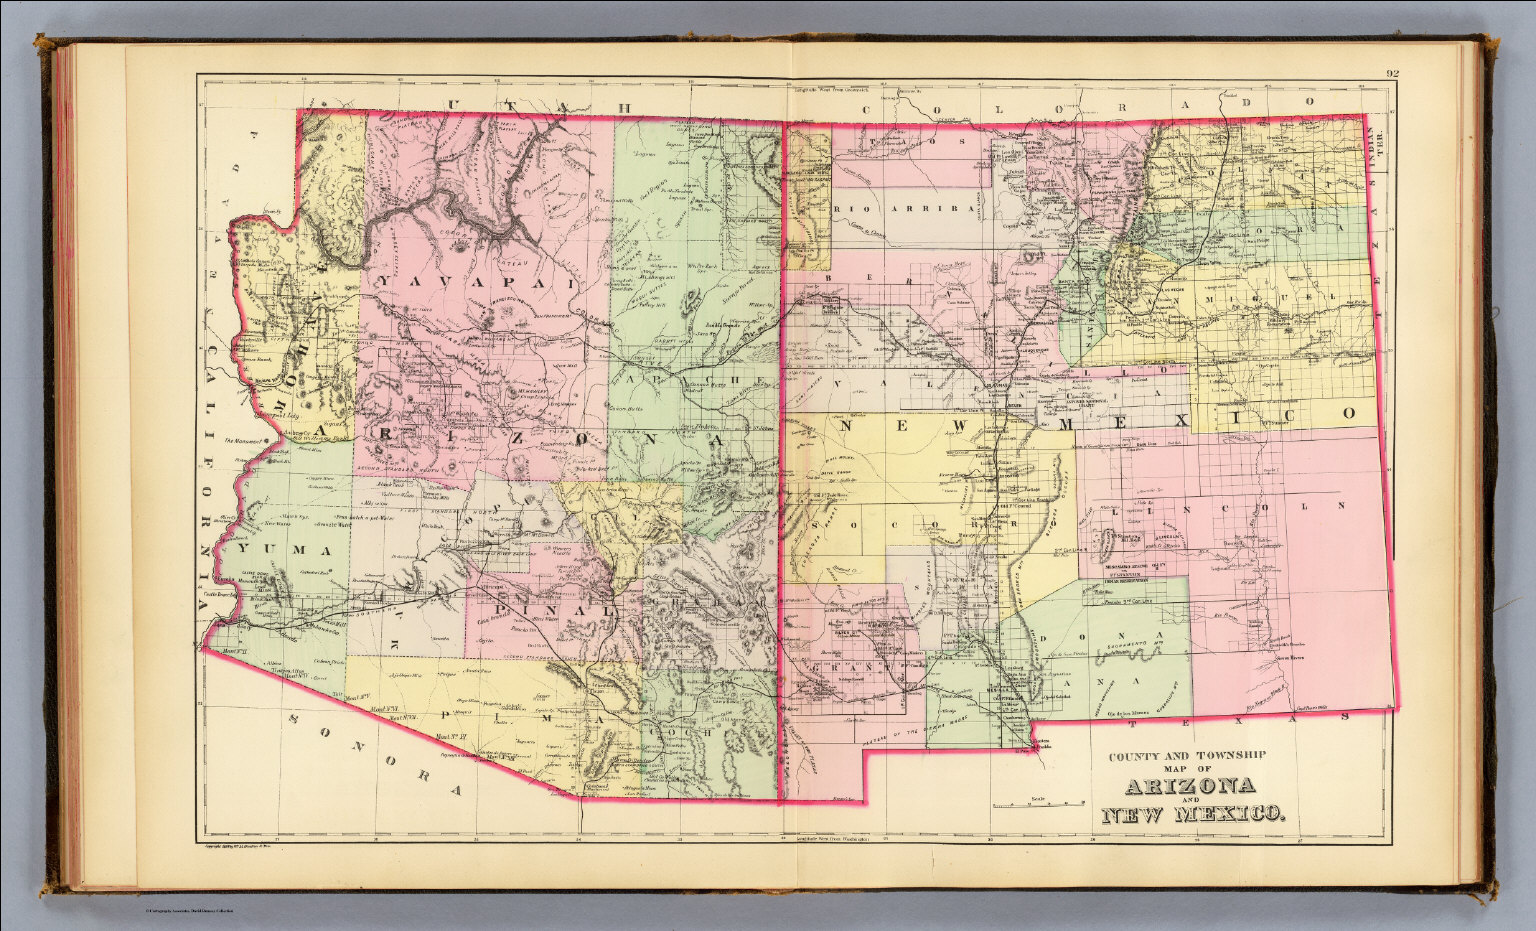 New Mexico Mitchell Samuel Augustus - Map of arizona and new mexico